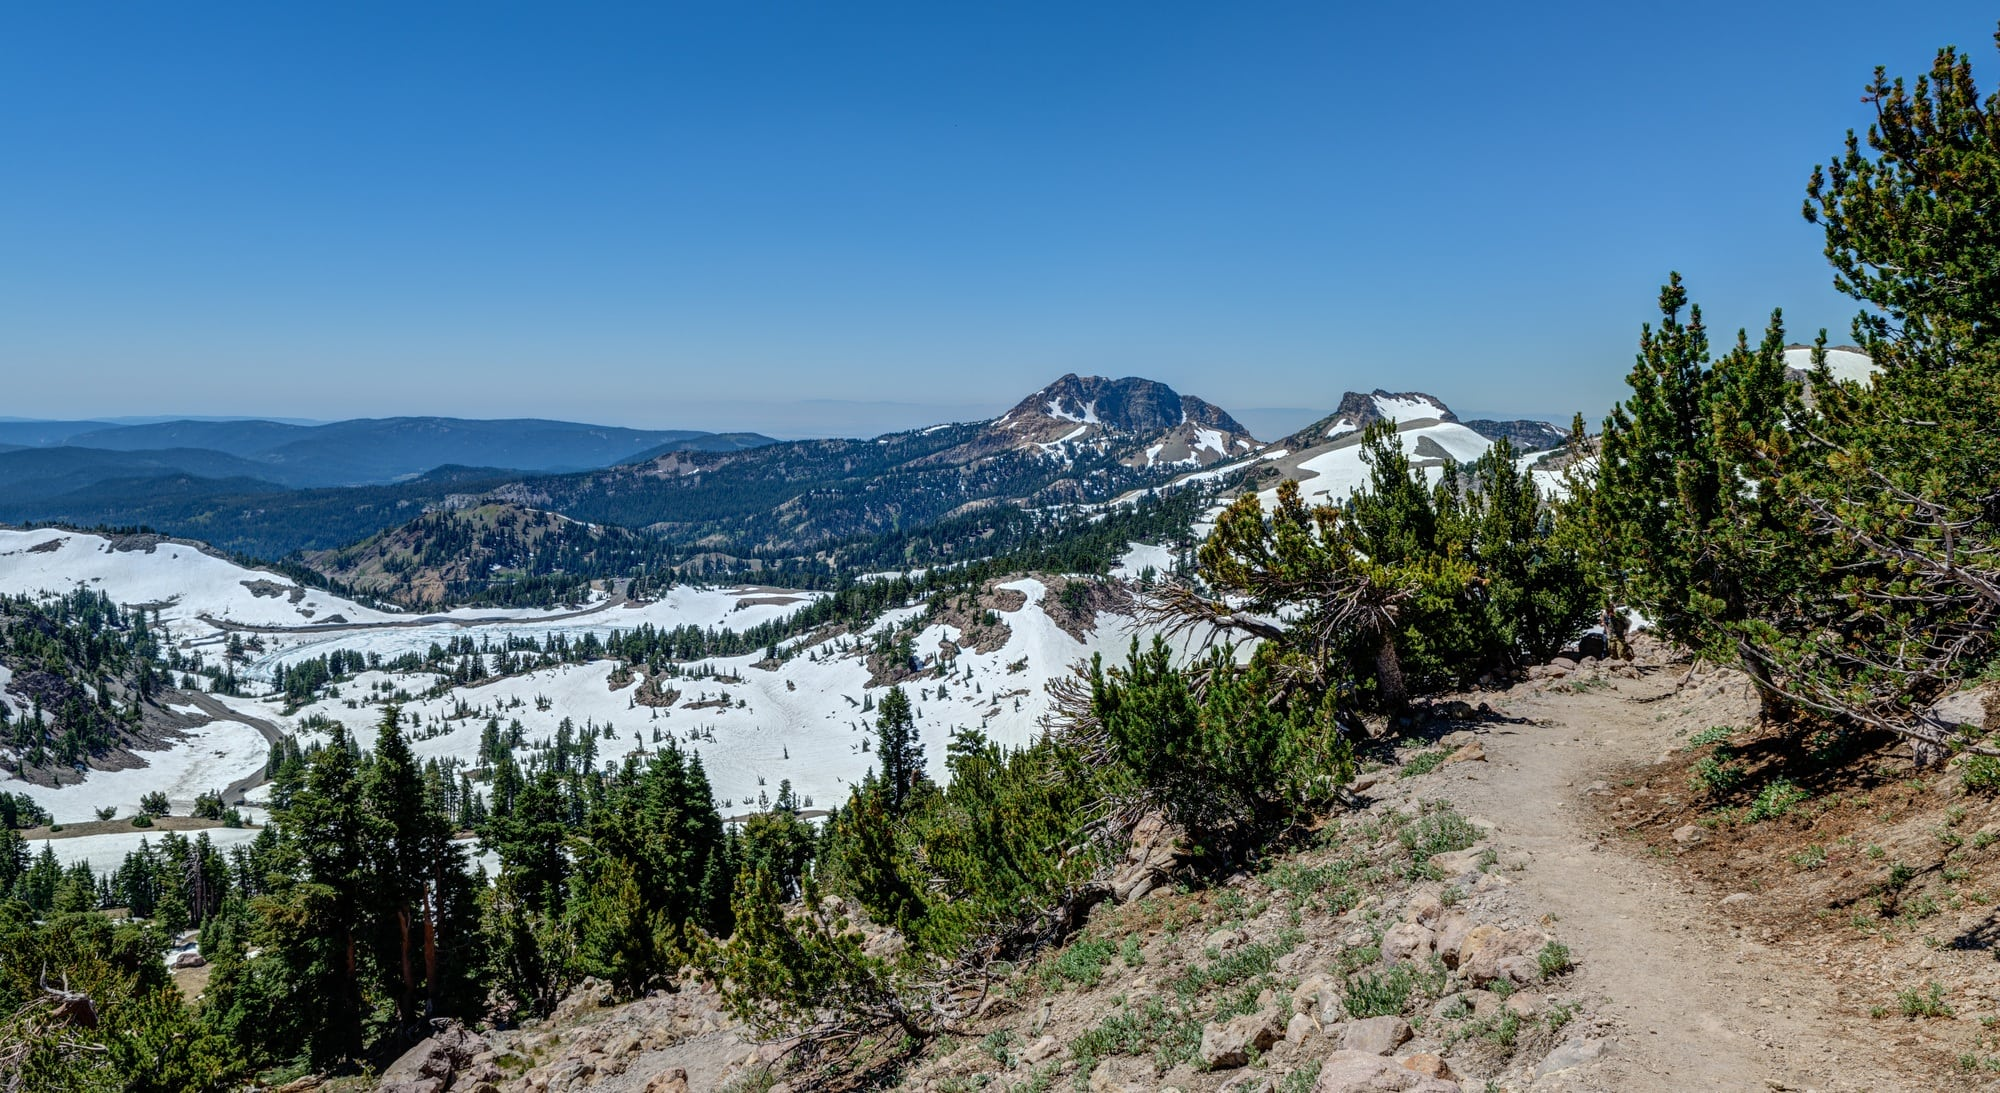 Lassen Peak // Boiling hot pots, alpine lakes, and big summits. Plan your trail adventures with our round-up of the best hikes in Lassen Volcanic Park in northern California.